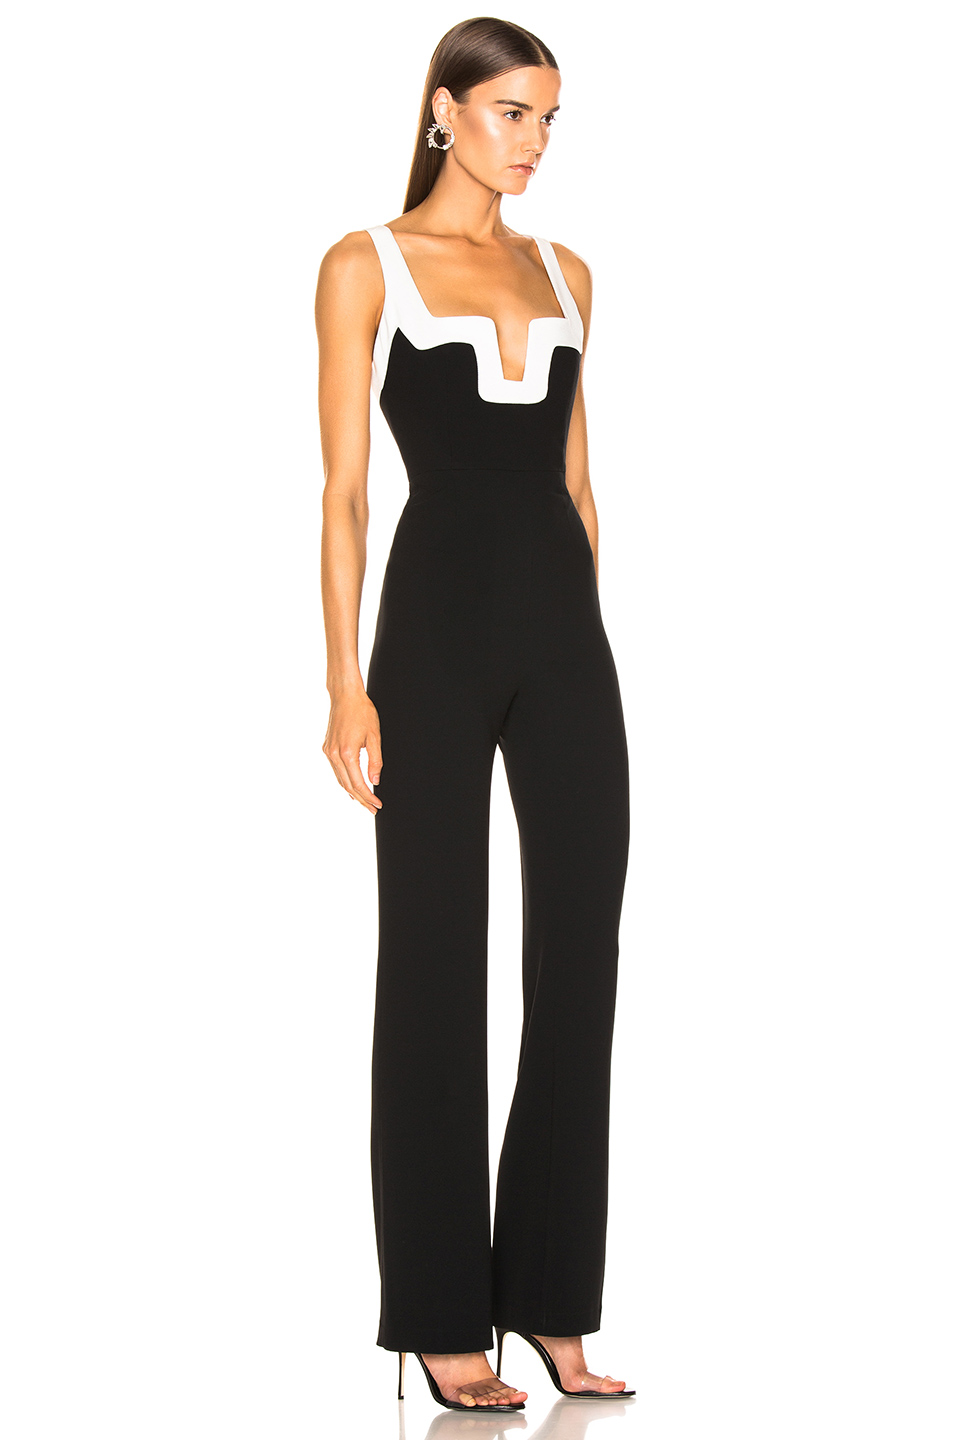 GALVAN Arabesque Jumpsuit